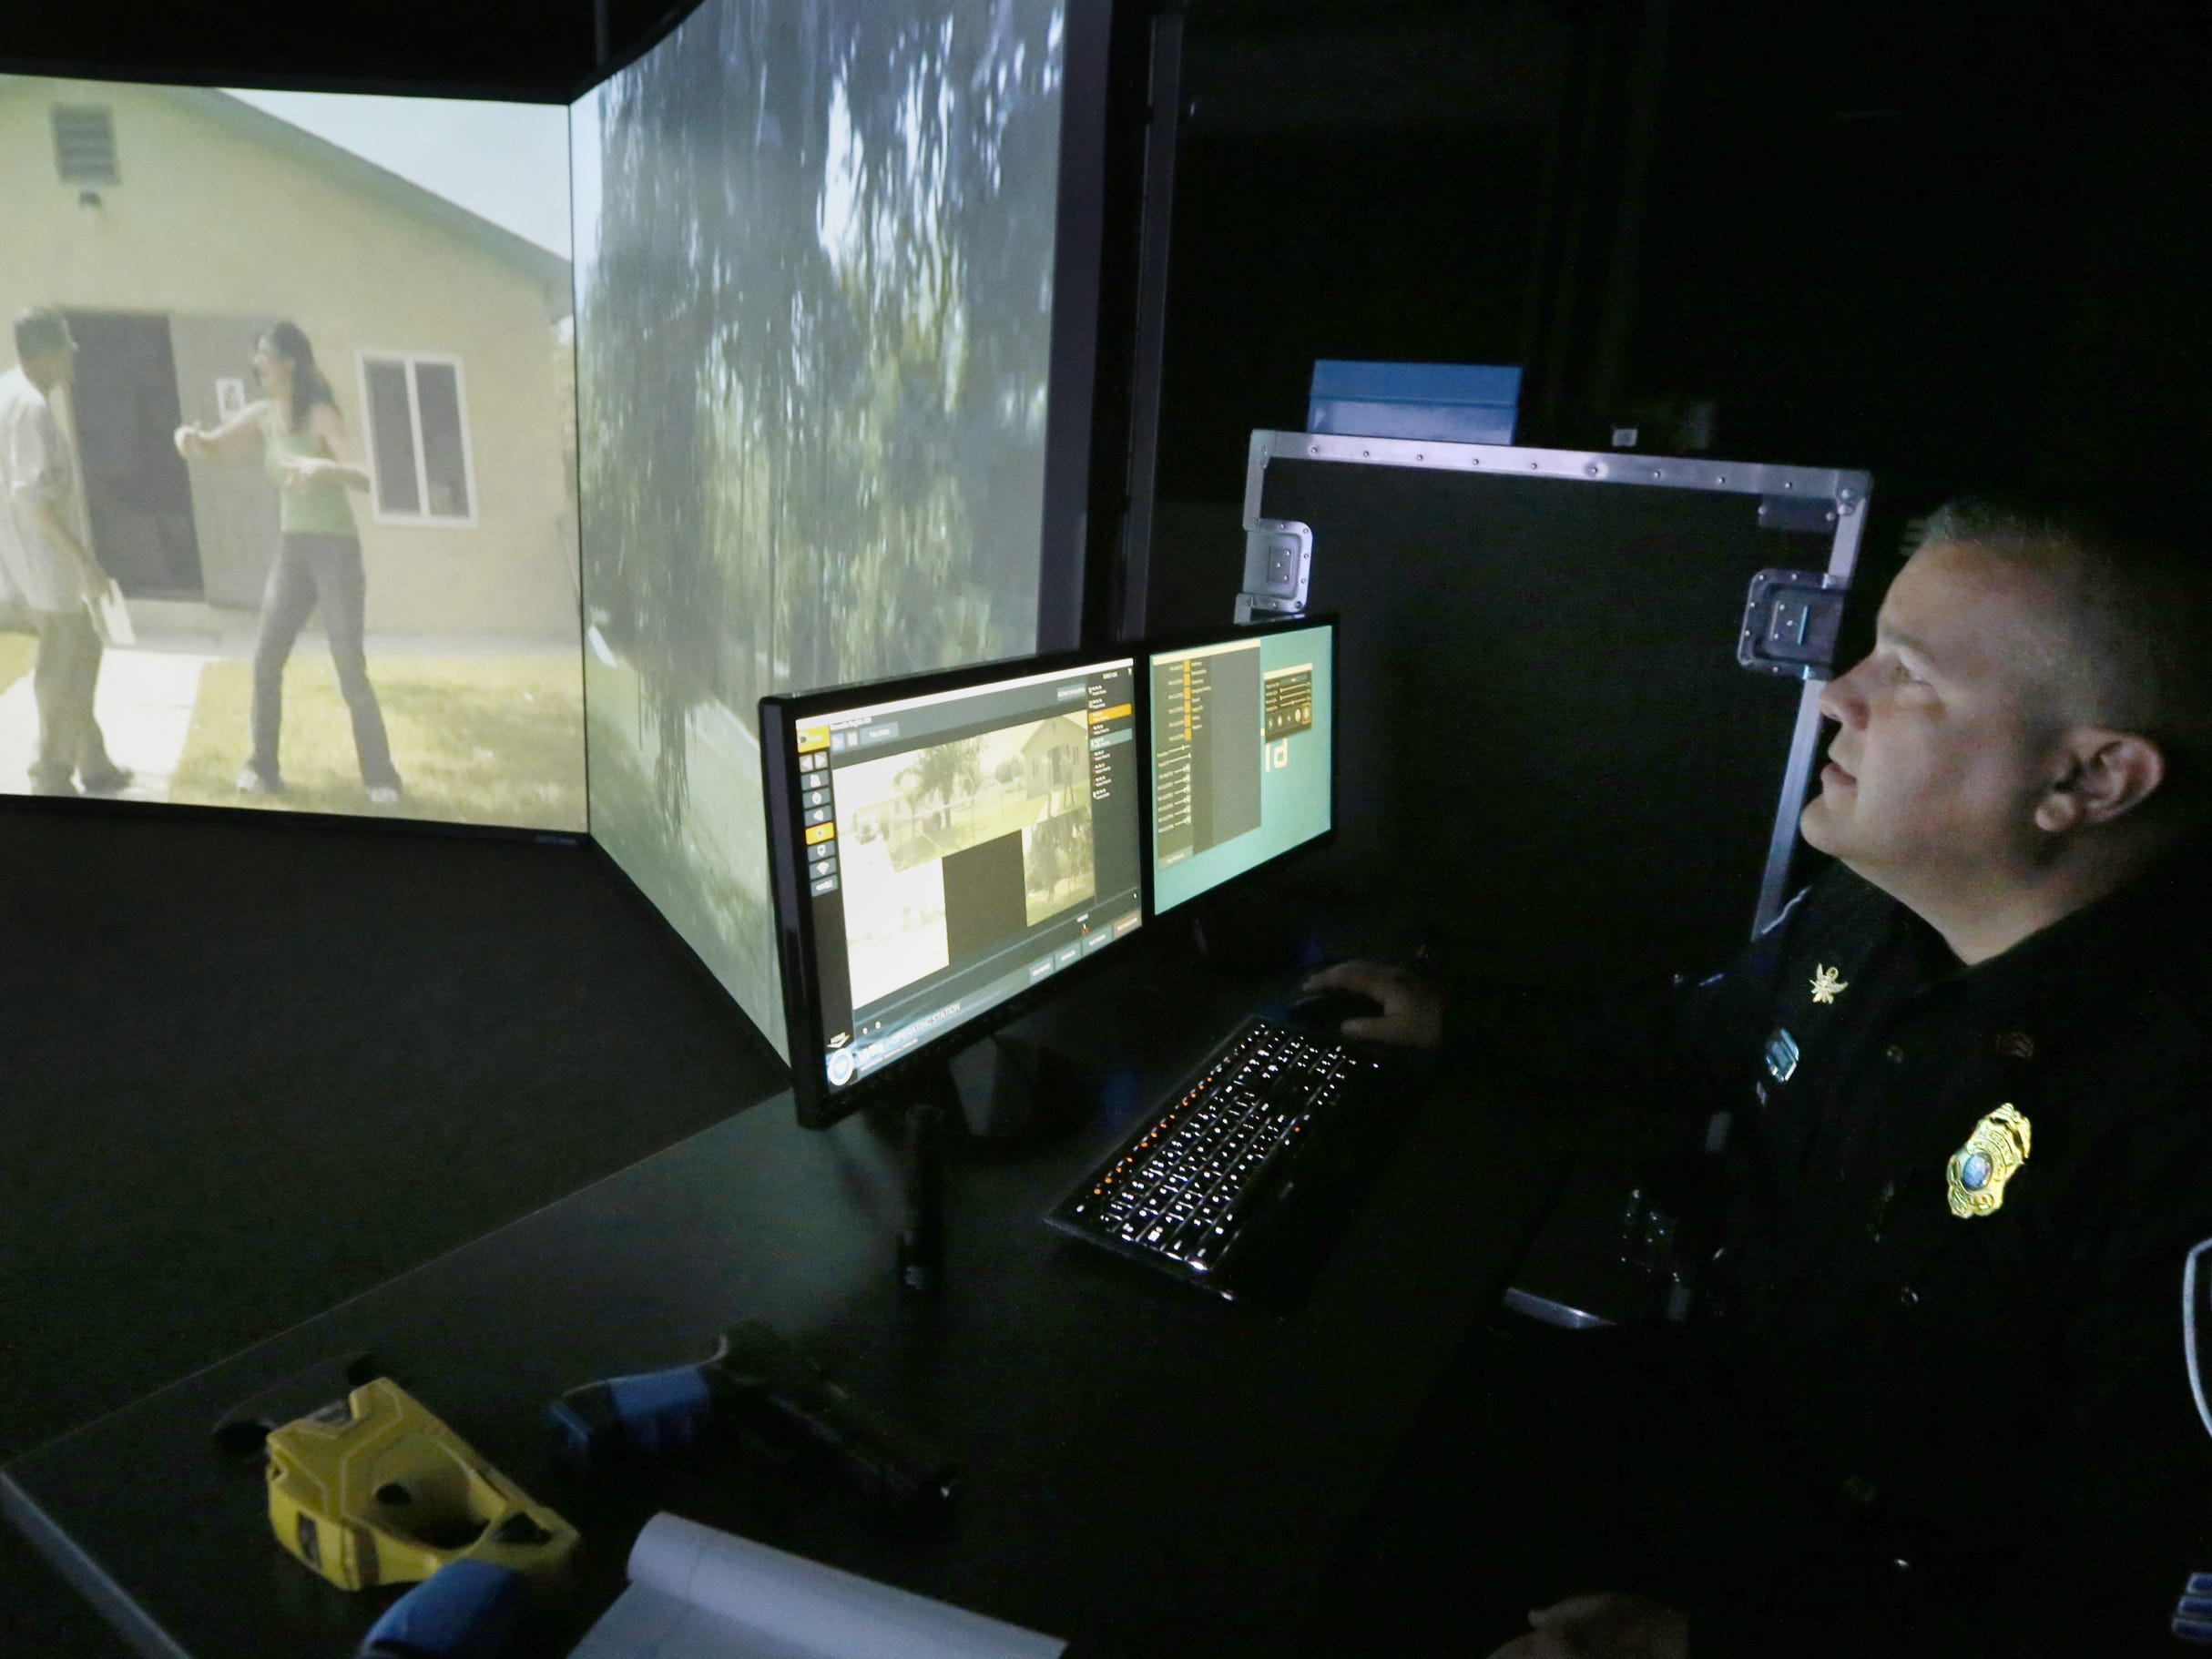 Sgt. Scott Newborn with the Murfreesboro Police Department shows off the firearms simulator in the new Murfreesboro Police Headquarters during a tour of the building, on Monday, May 7, 2018.